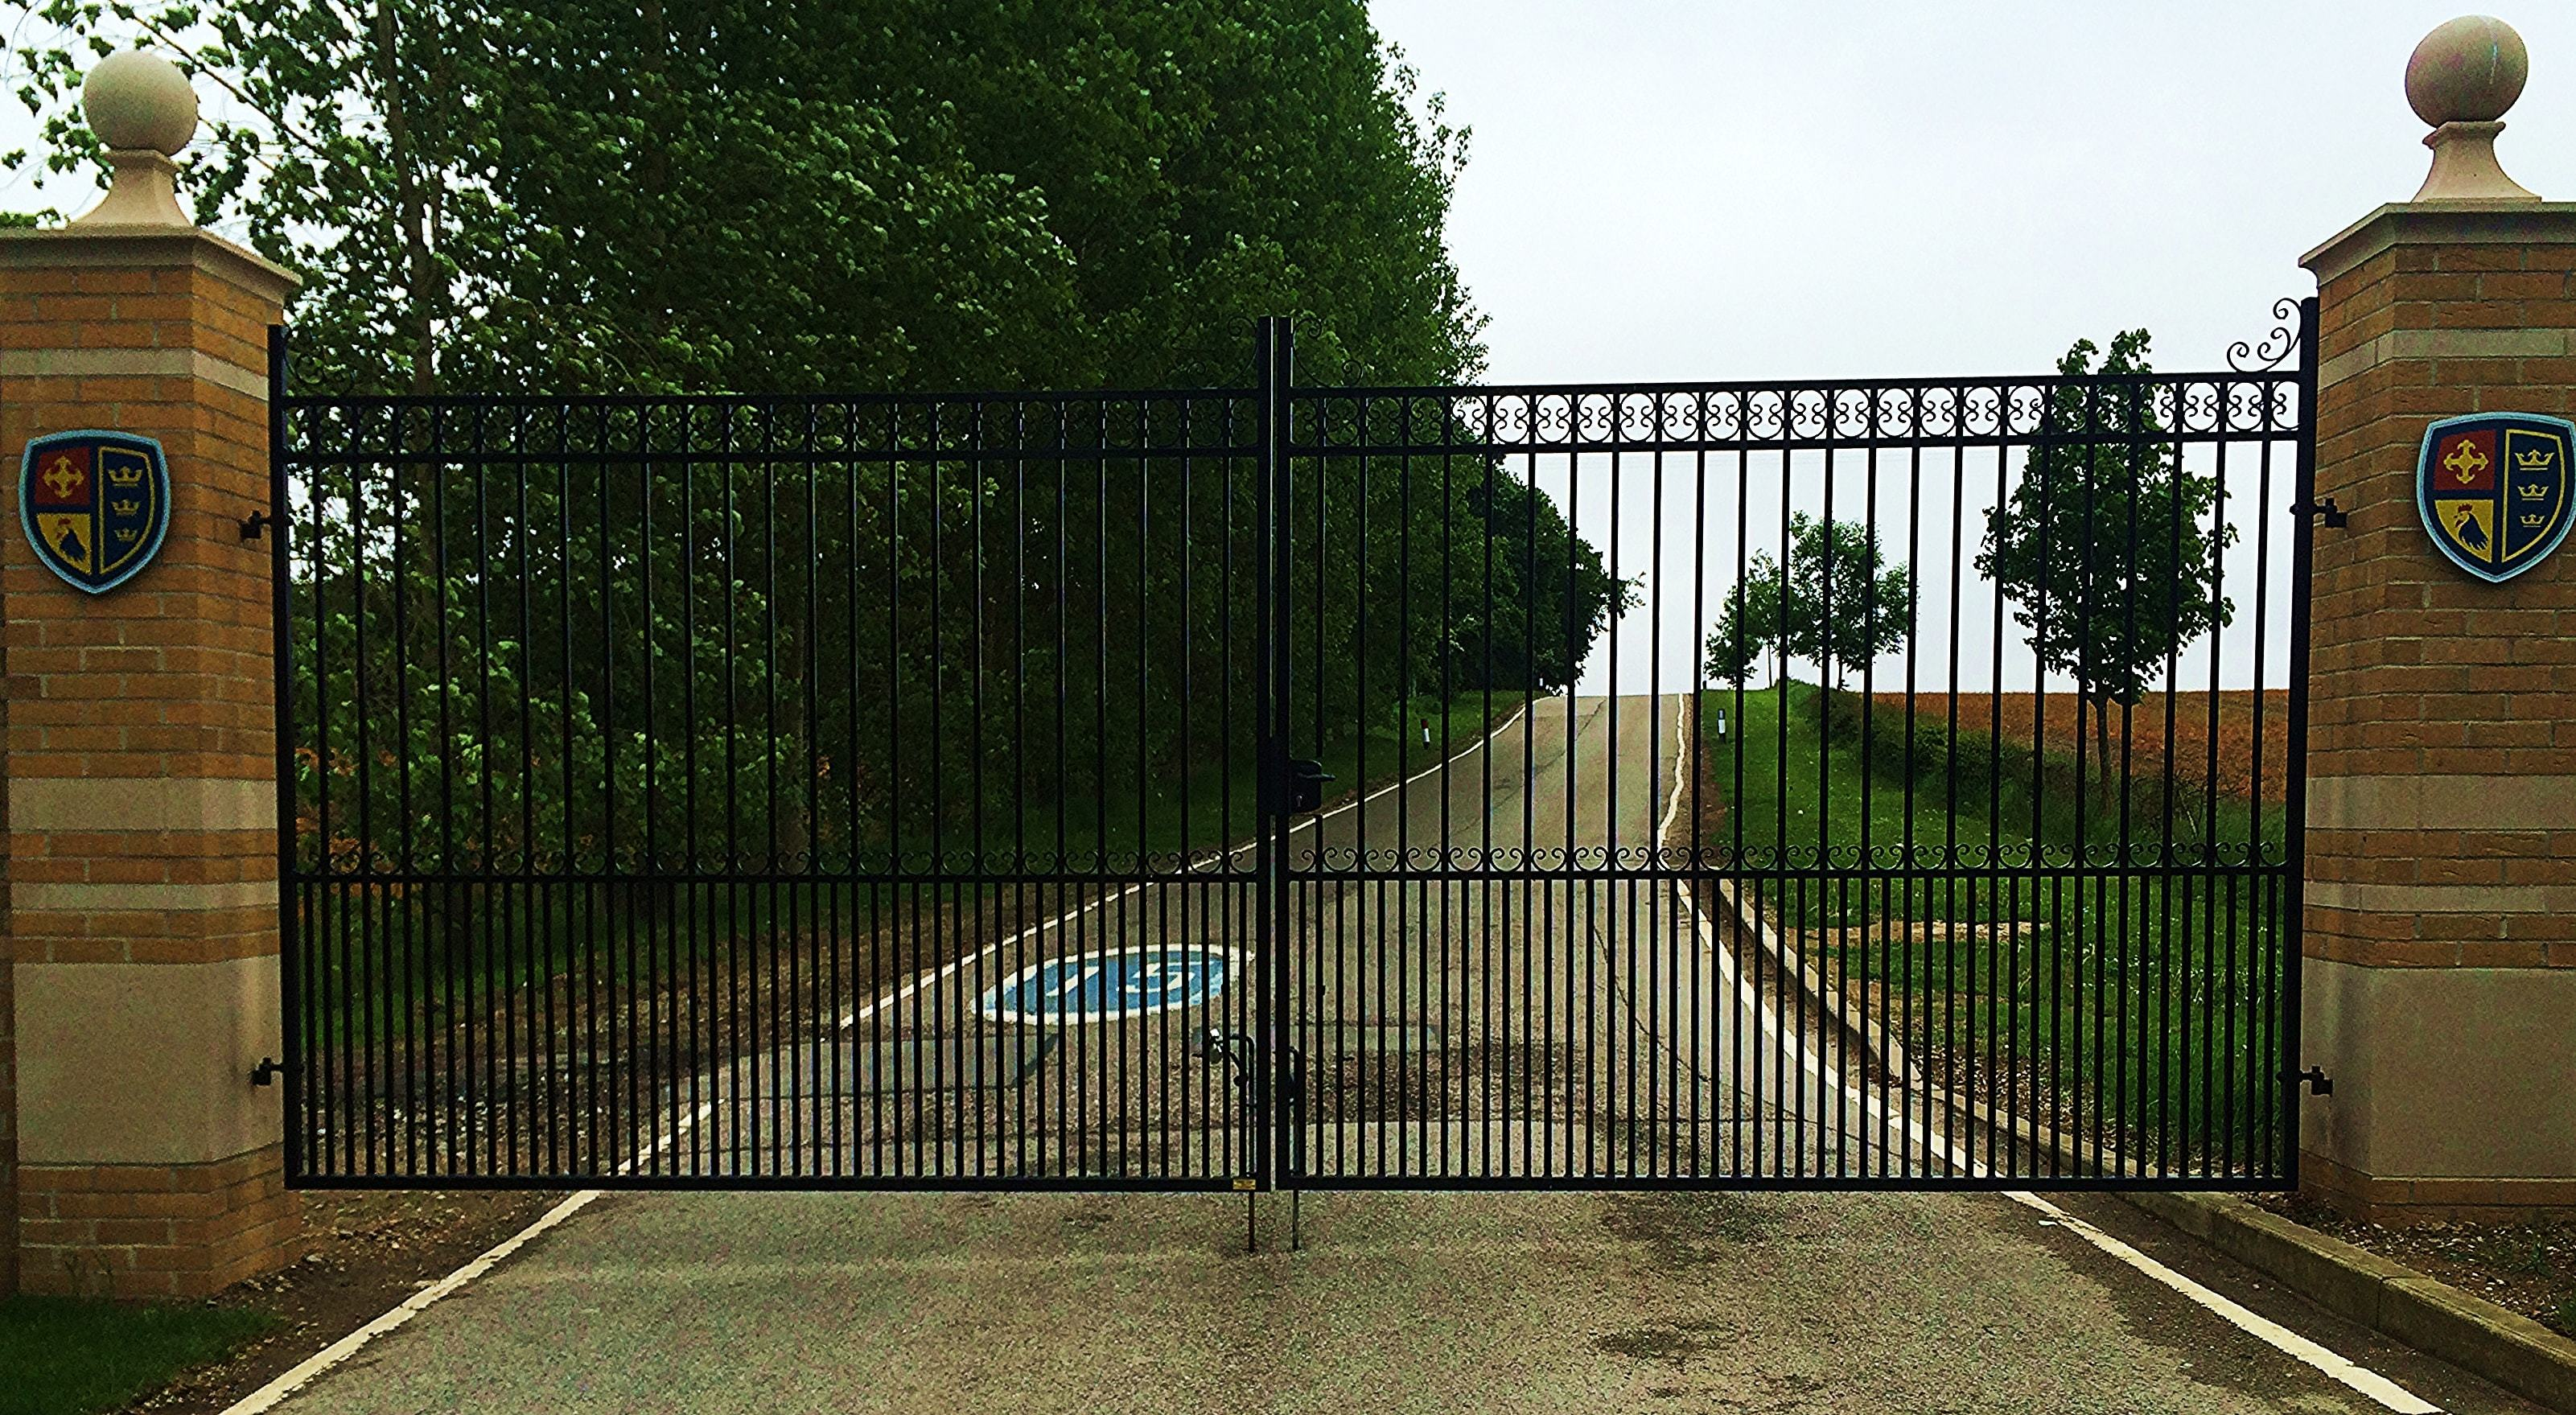 Architect Designed Metal Gates for Hull Collegiate School